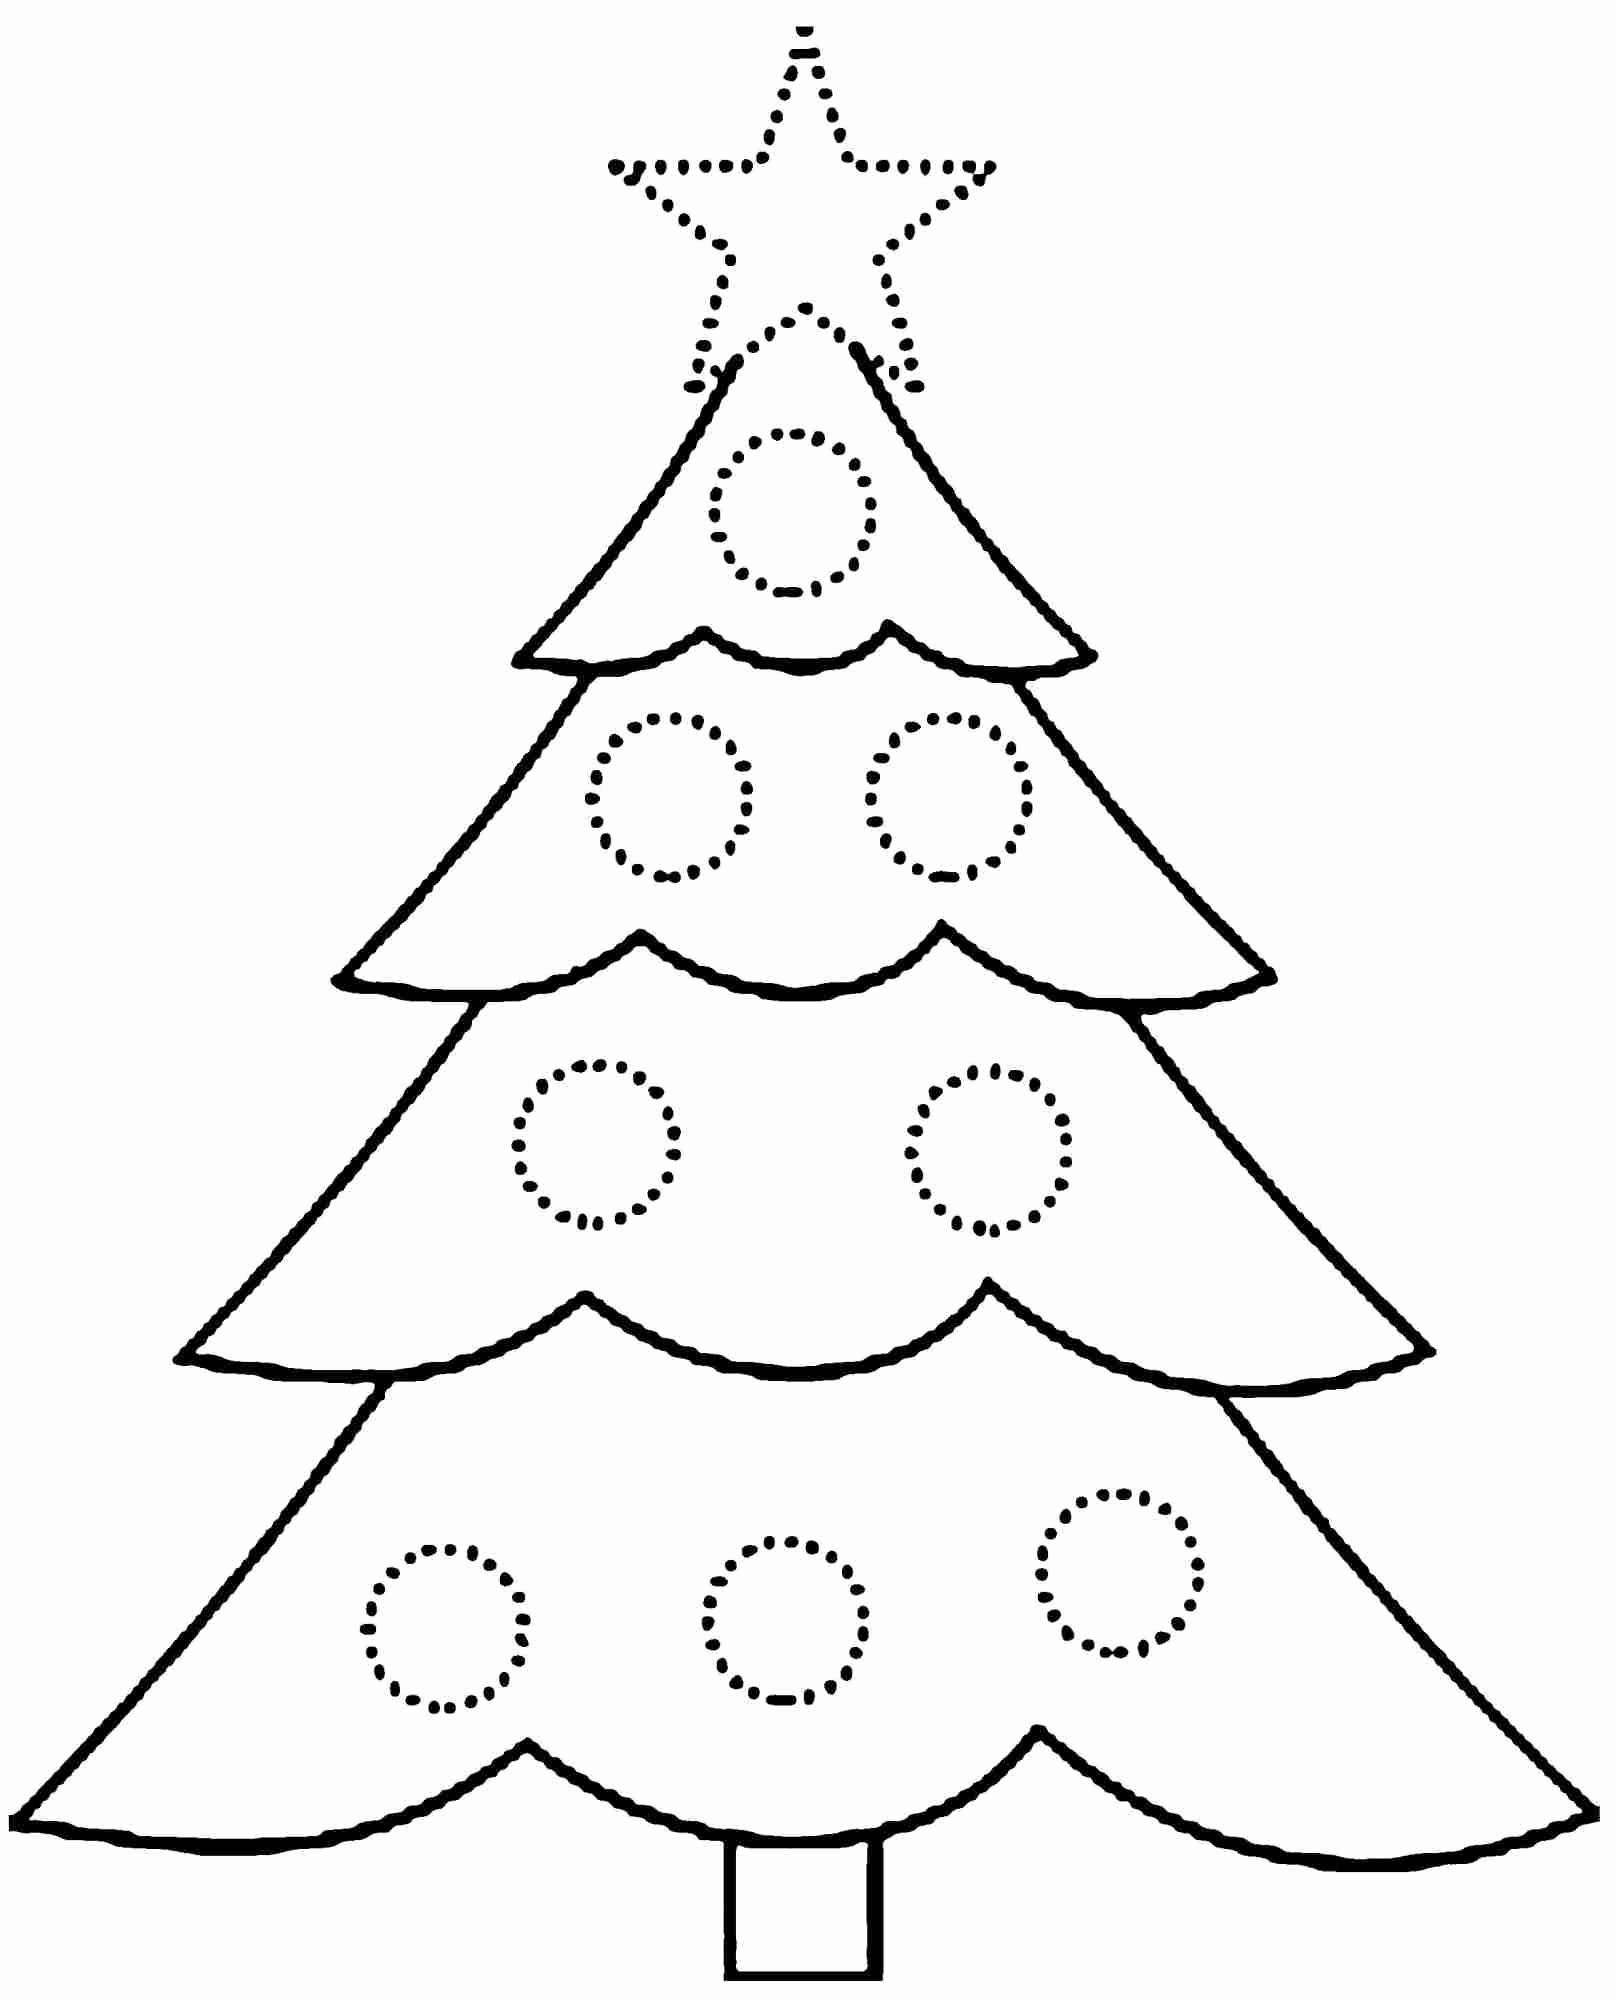 Coloring Pages Christmas Holly Best Free Printable Christmas Tree - Free Printable Christmas Tree Ornaments Coloring Pages